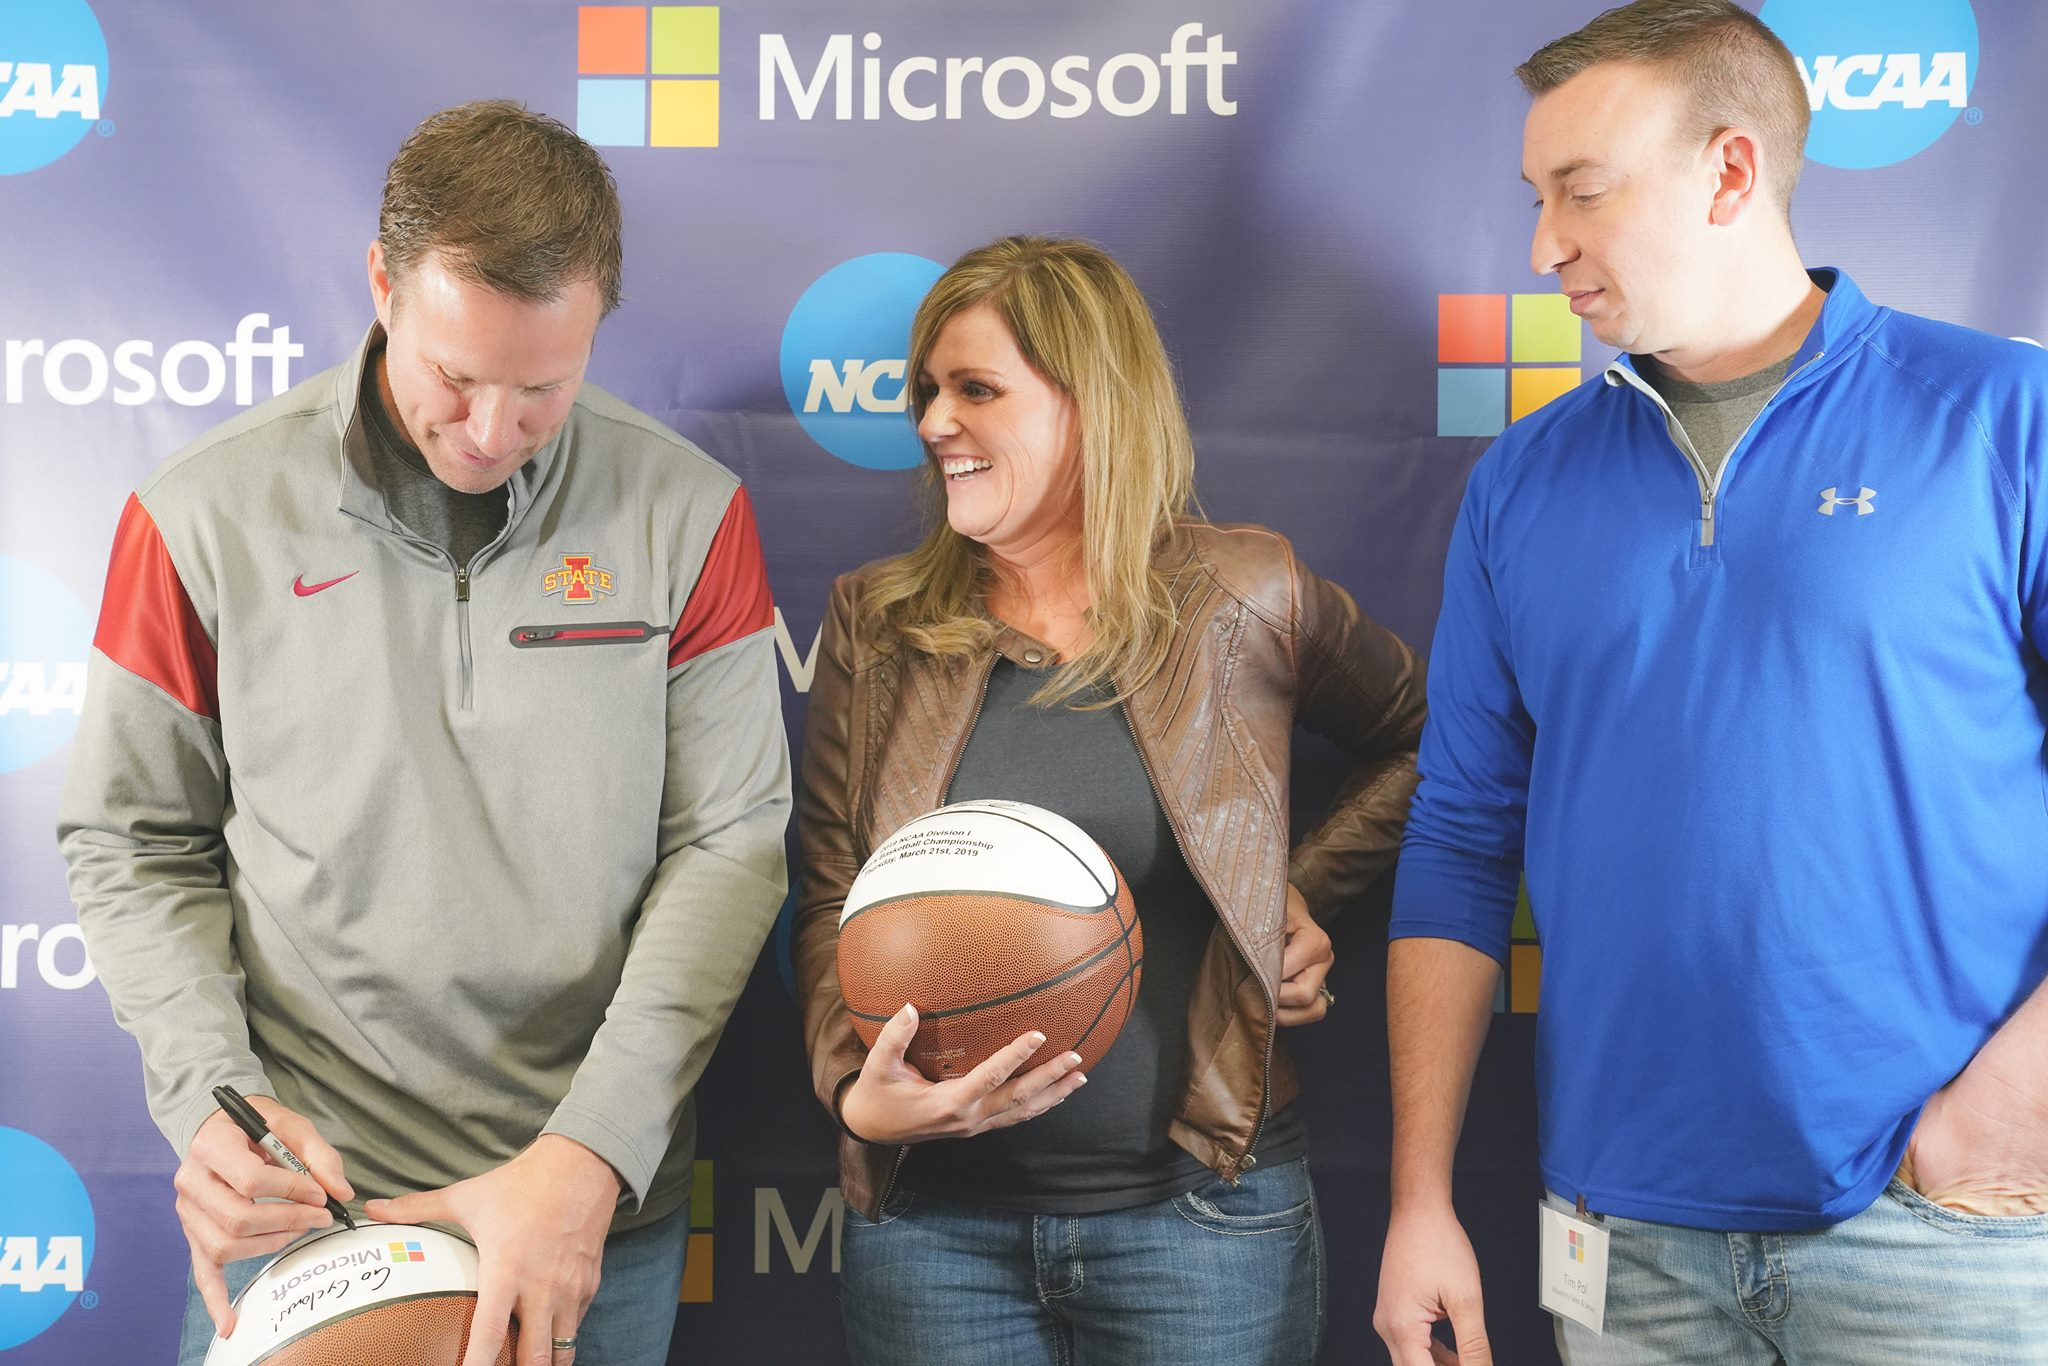 Corporate Event Photography Hosted by Microsoft and NCAA